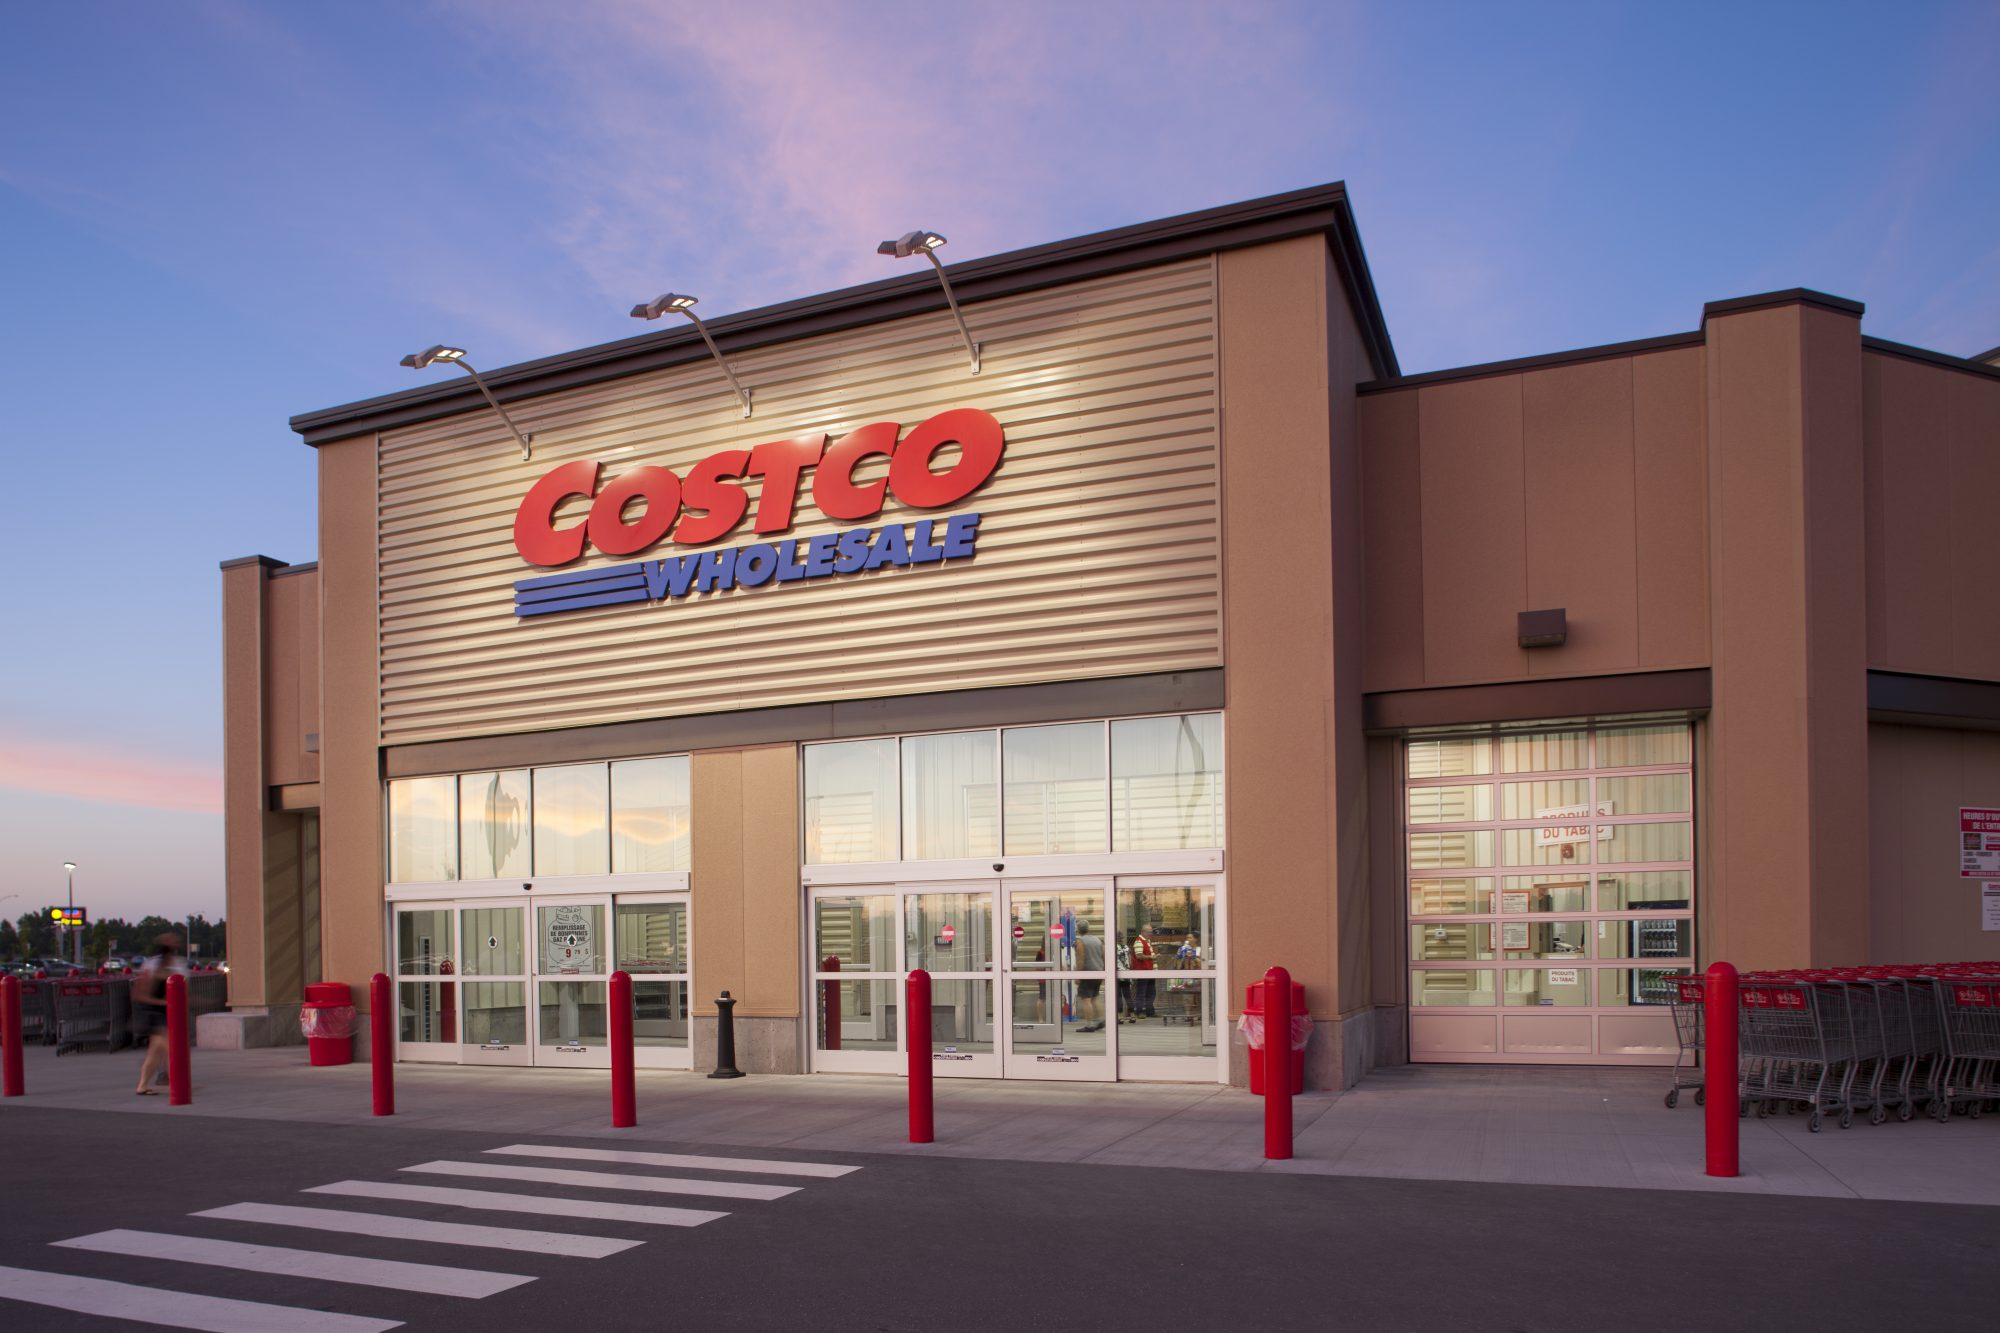 Costco Wholesale Front Entrance